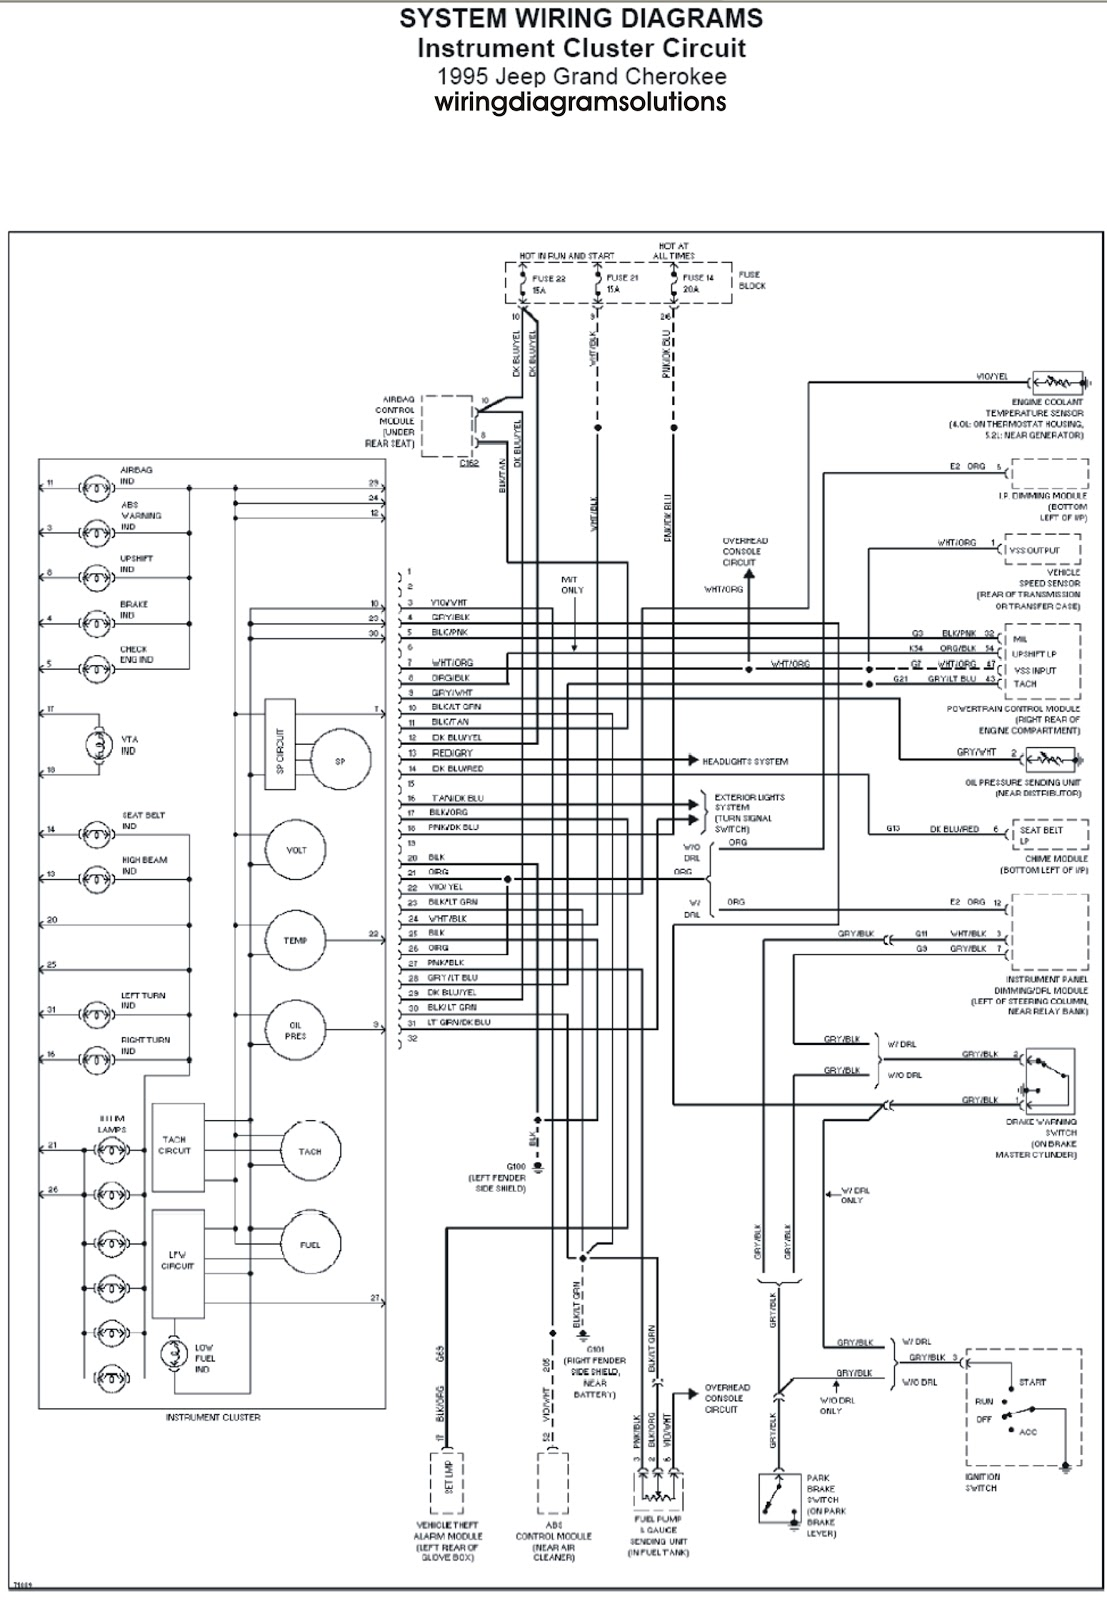 Subaru Svx Cooling System Diagram Best Secret Wiring 1988 Wagon 1994 Engine 2004 Legacy 2007 Outback Liter Diagram22